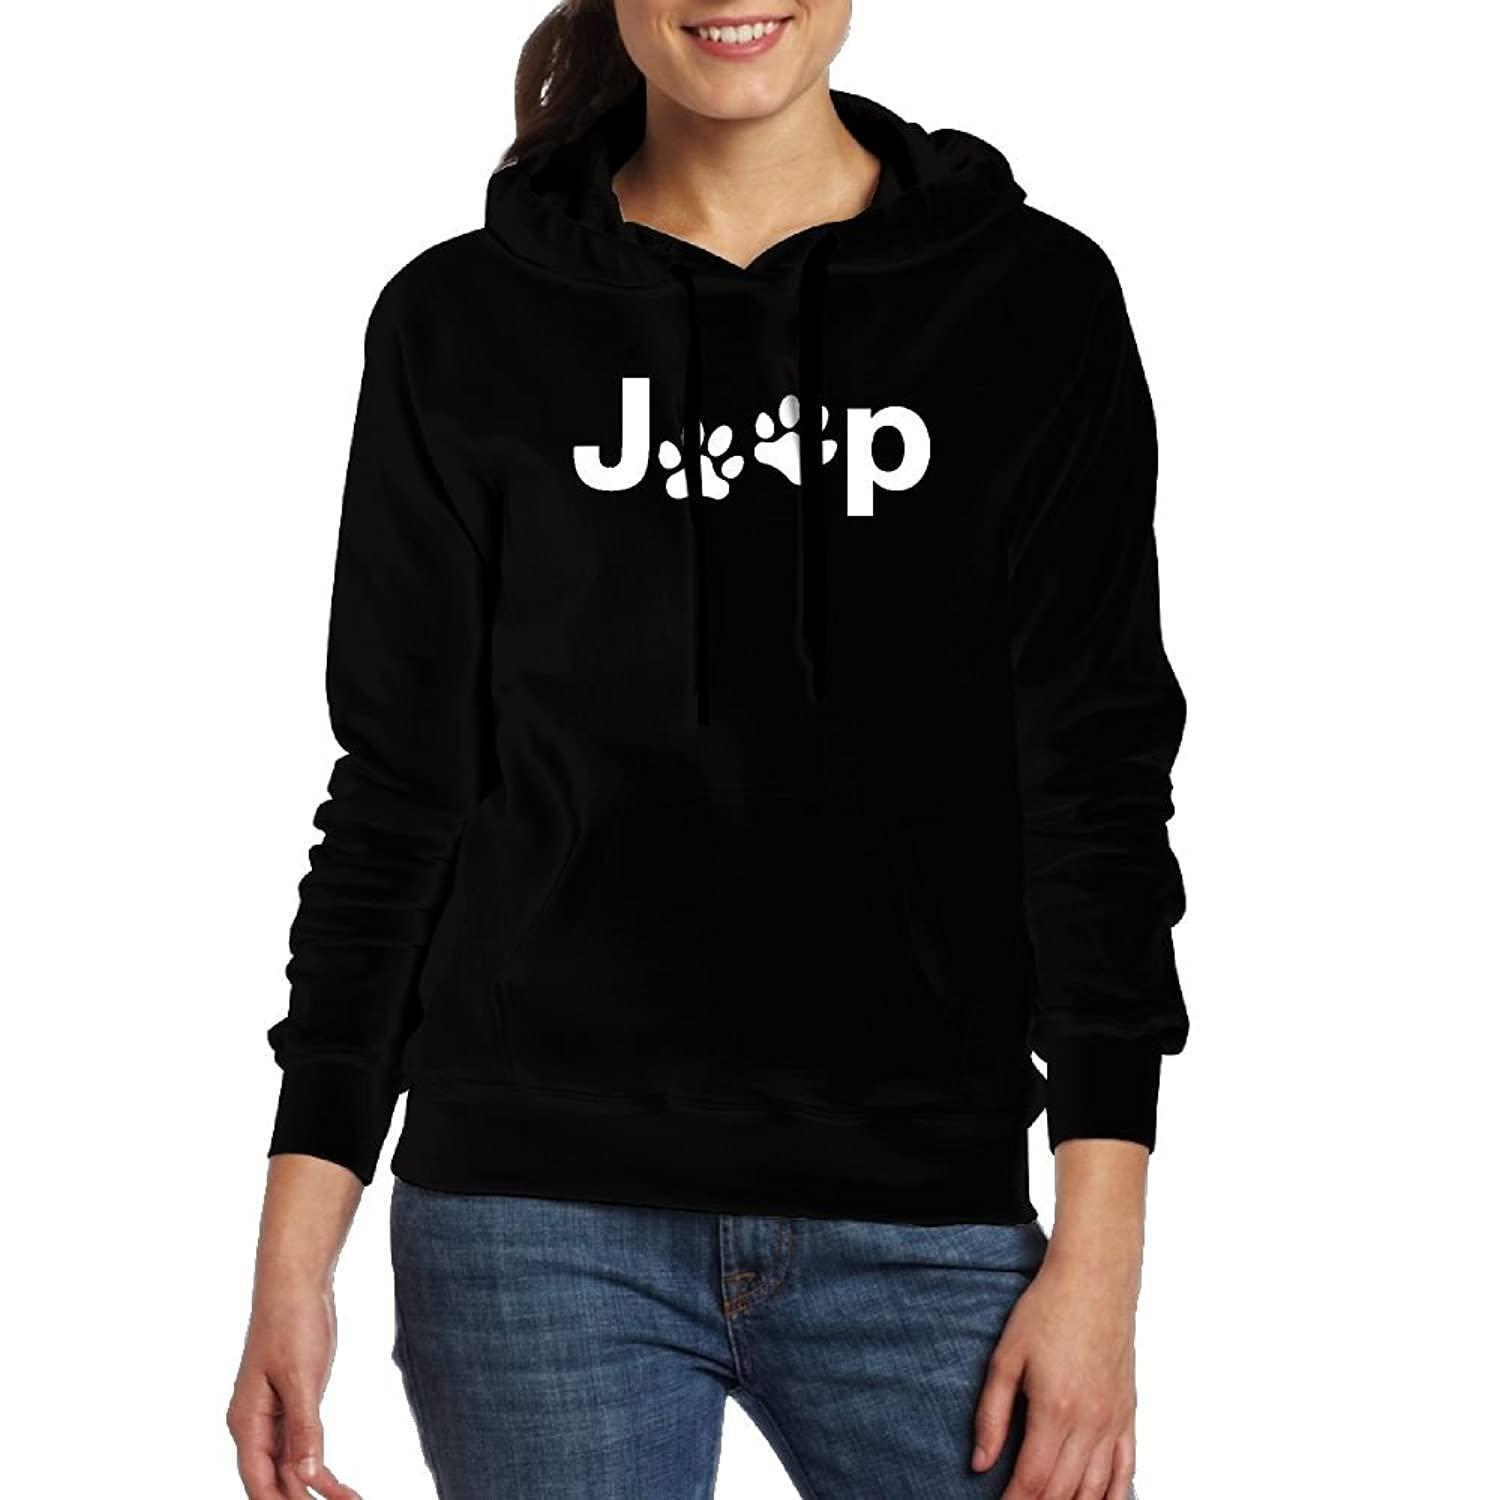 Womens Jeep With Dog Paw Logo Hipster Casual Hooded Sweatshirt At Hoodie Bullet For My Valentine Amazon Clothing Store